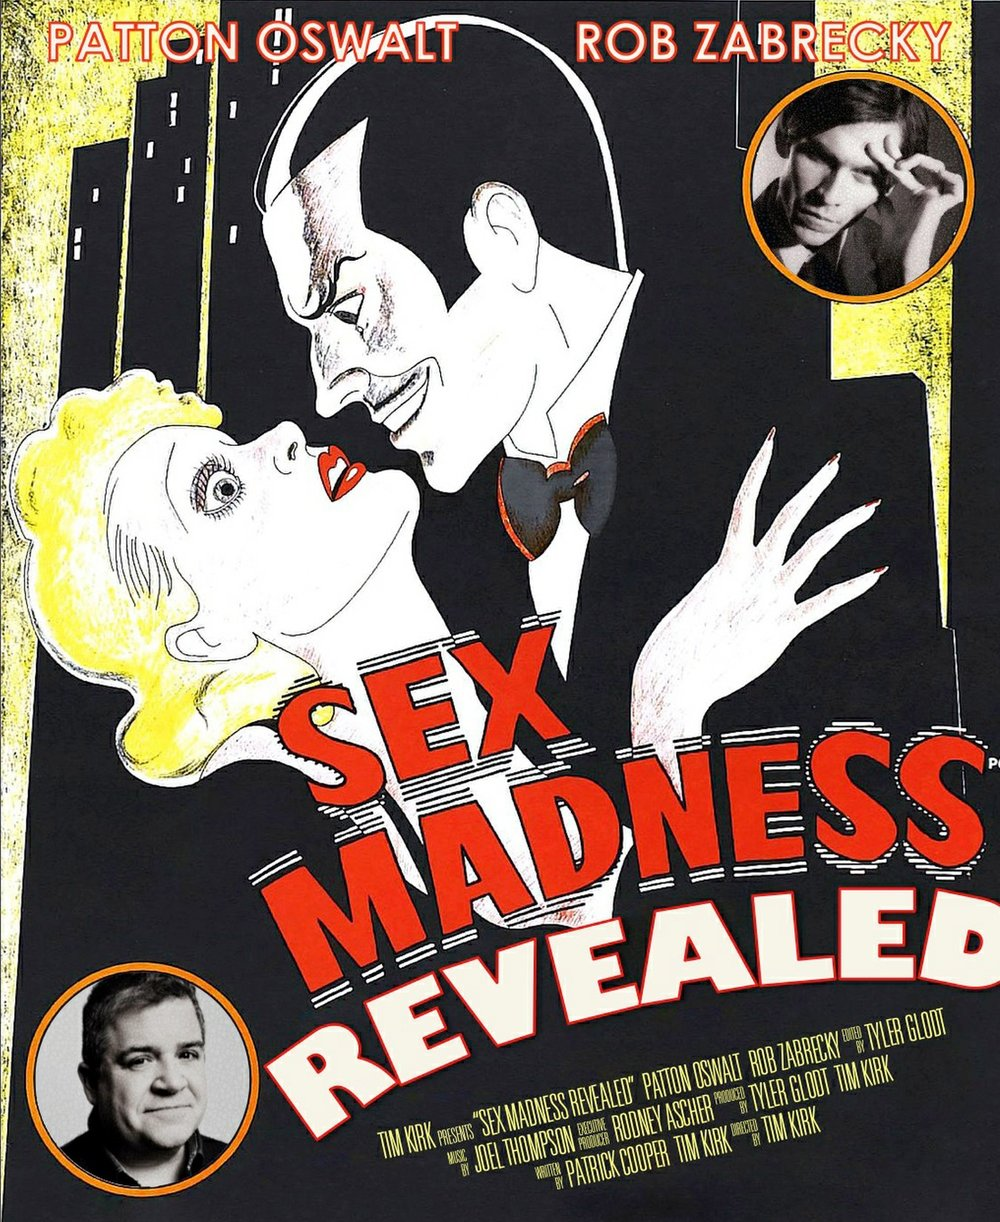 Sex Madness Revealed Poster-trimmed.jpg